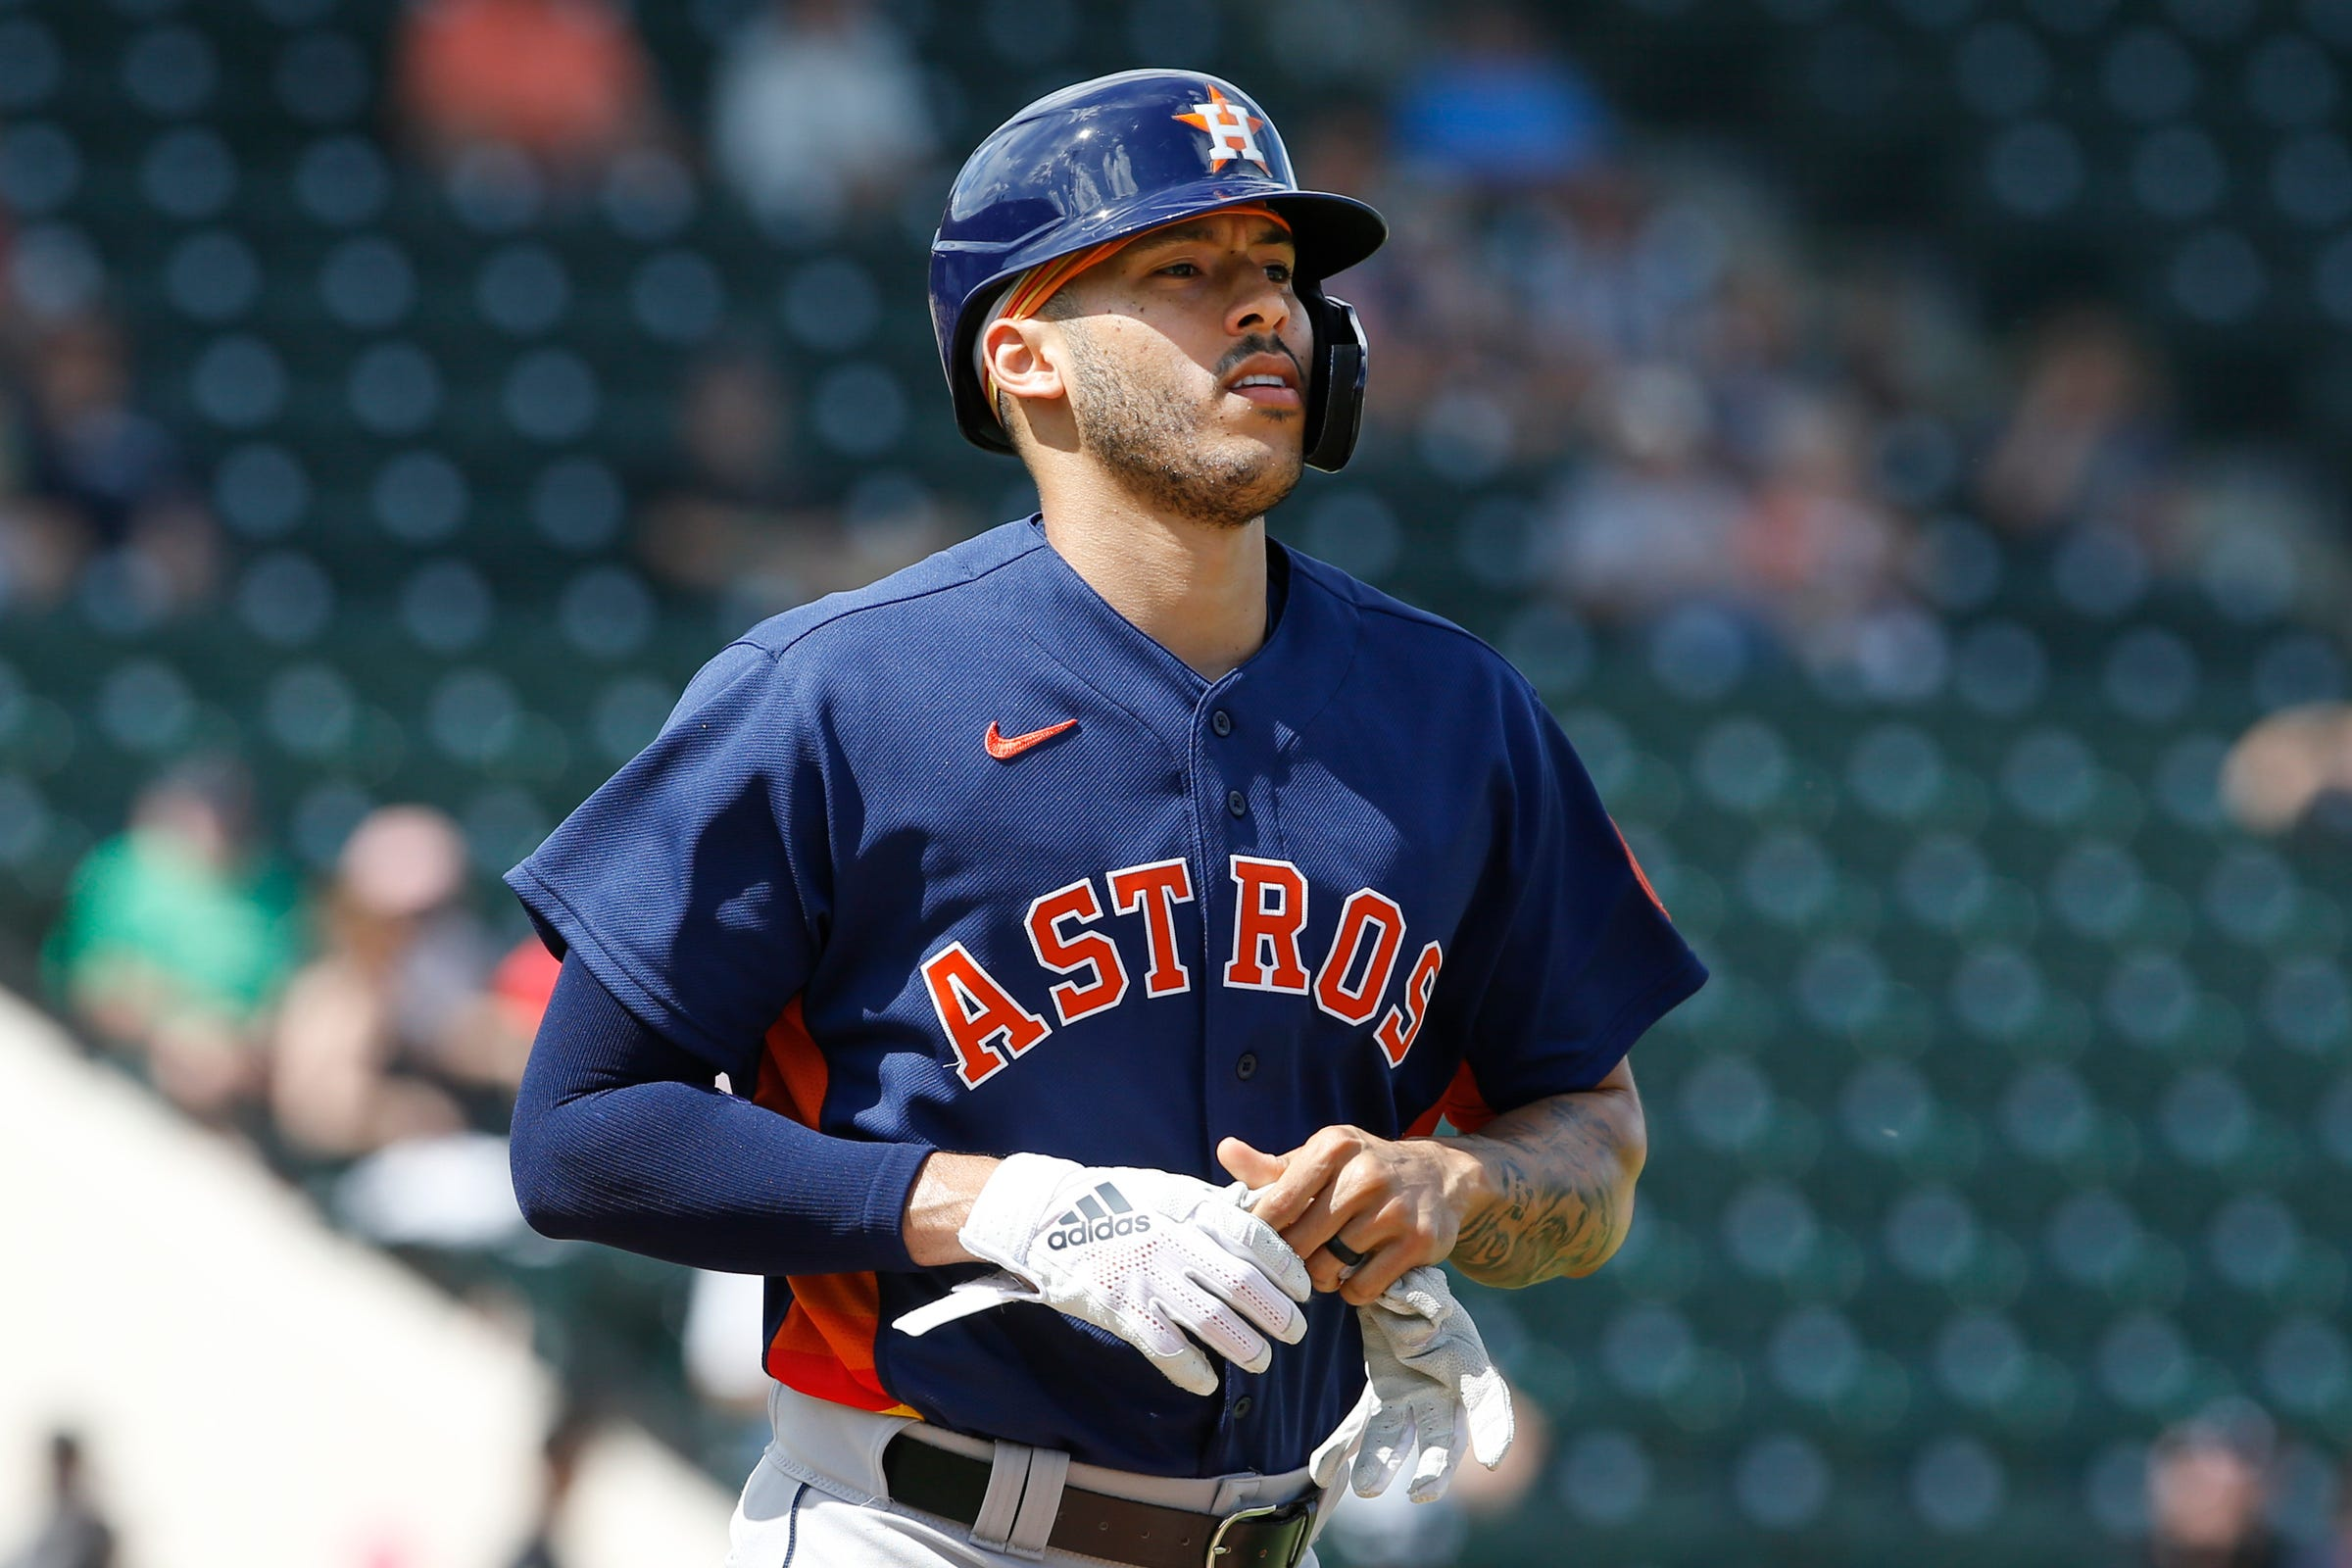 Detroit Tigers don't hit Houston Astros, but crowd boos loudly